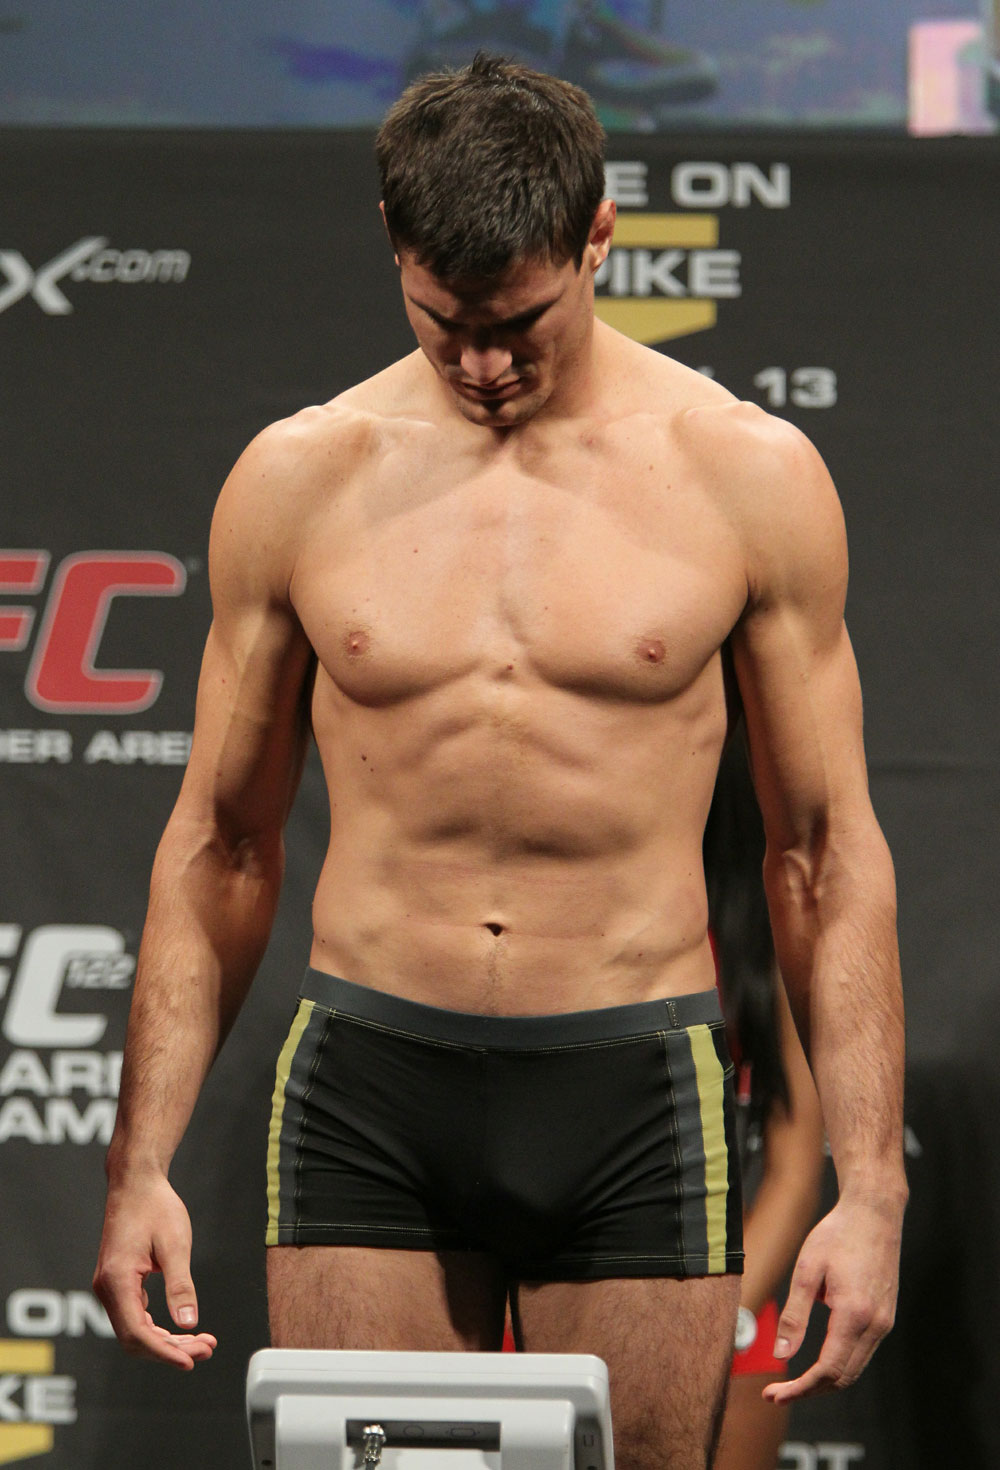 Goran Reljic of Croatia weighs in at 205 lbs at the UFC 122 weigh-in at the Kšnig Pilsener Arena on November 12,  2010 in Oberhausen, Germany.  (Photo by Josh Hedges/Zuffa LLC/Zuffa LLC via Getty Images)